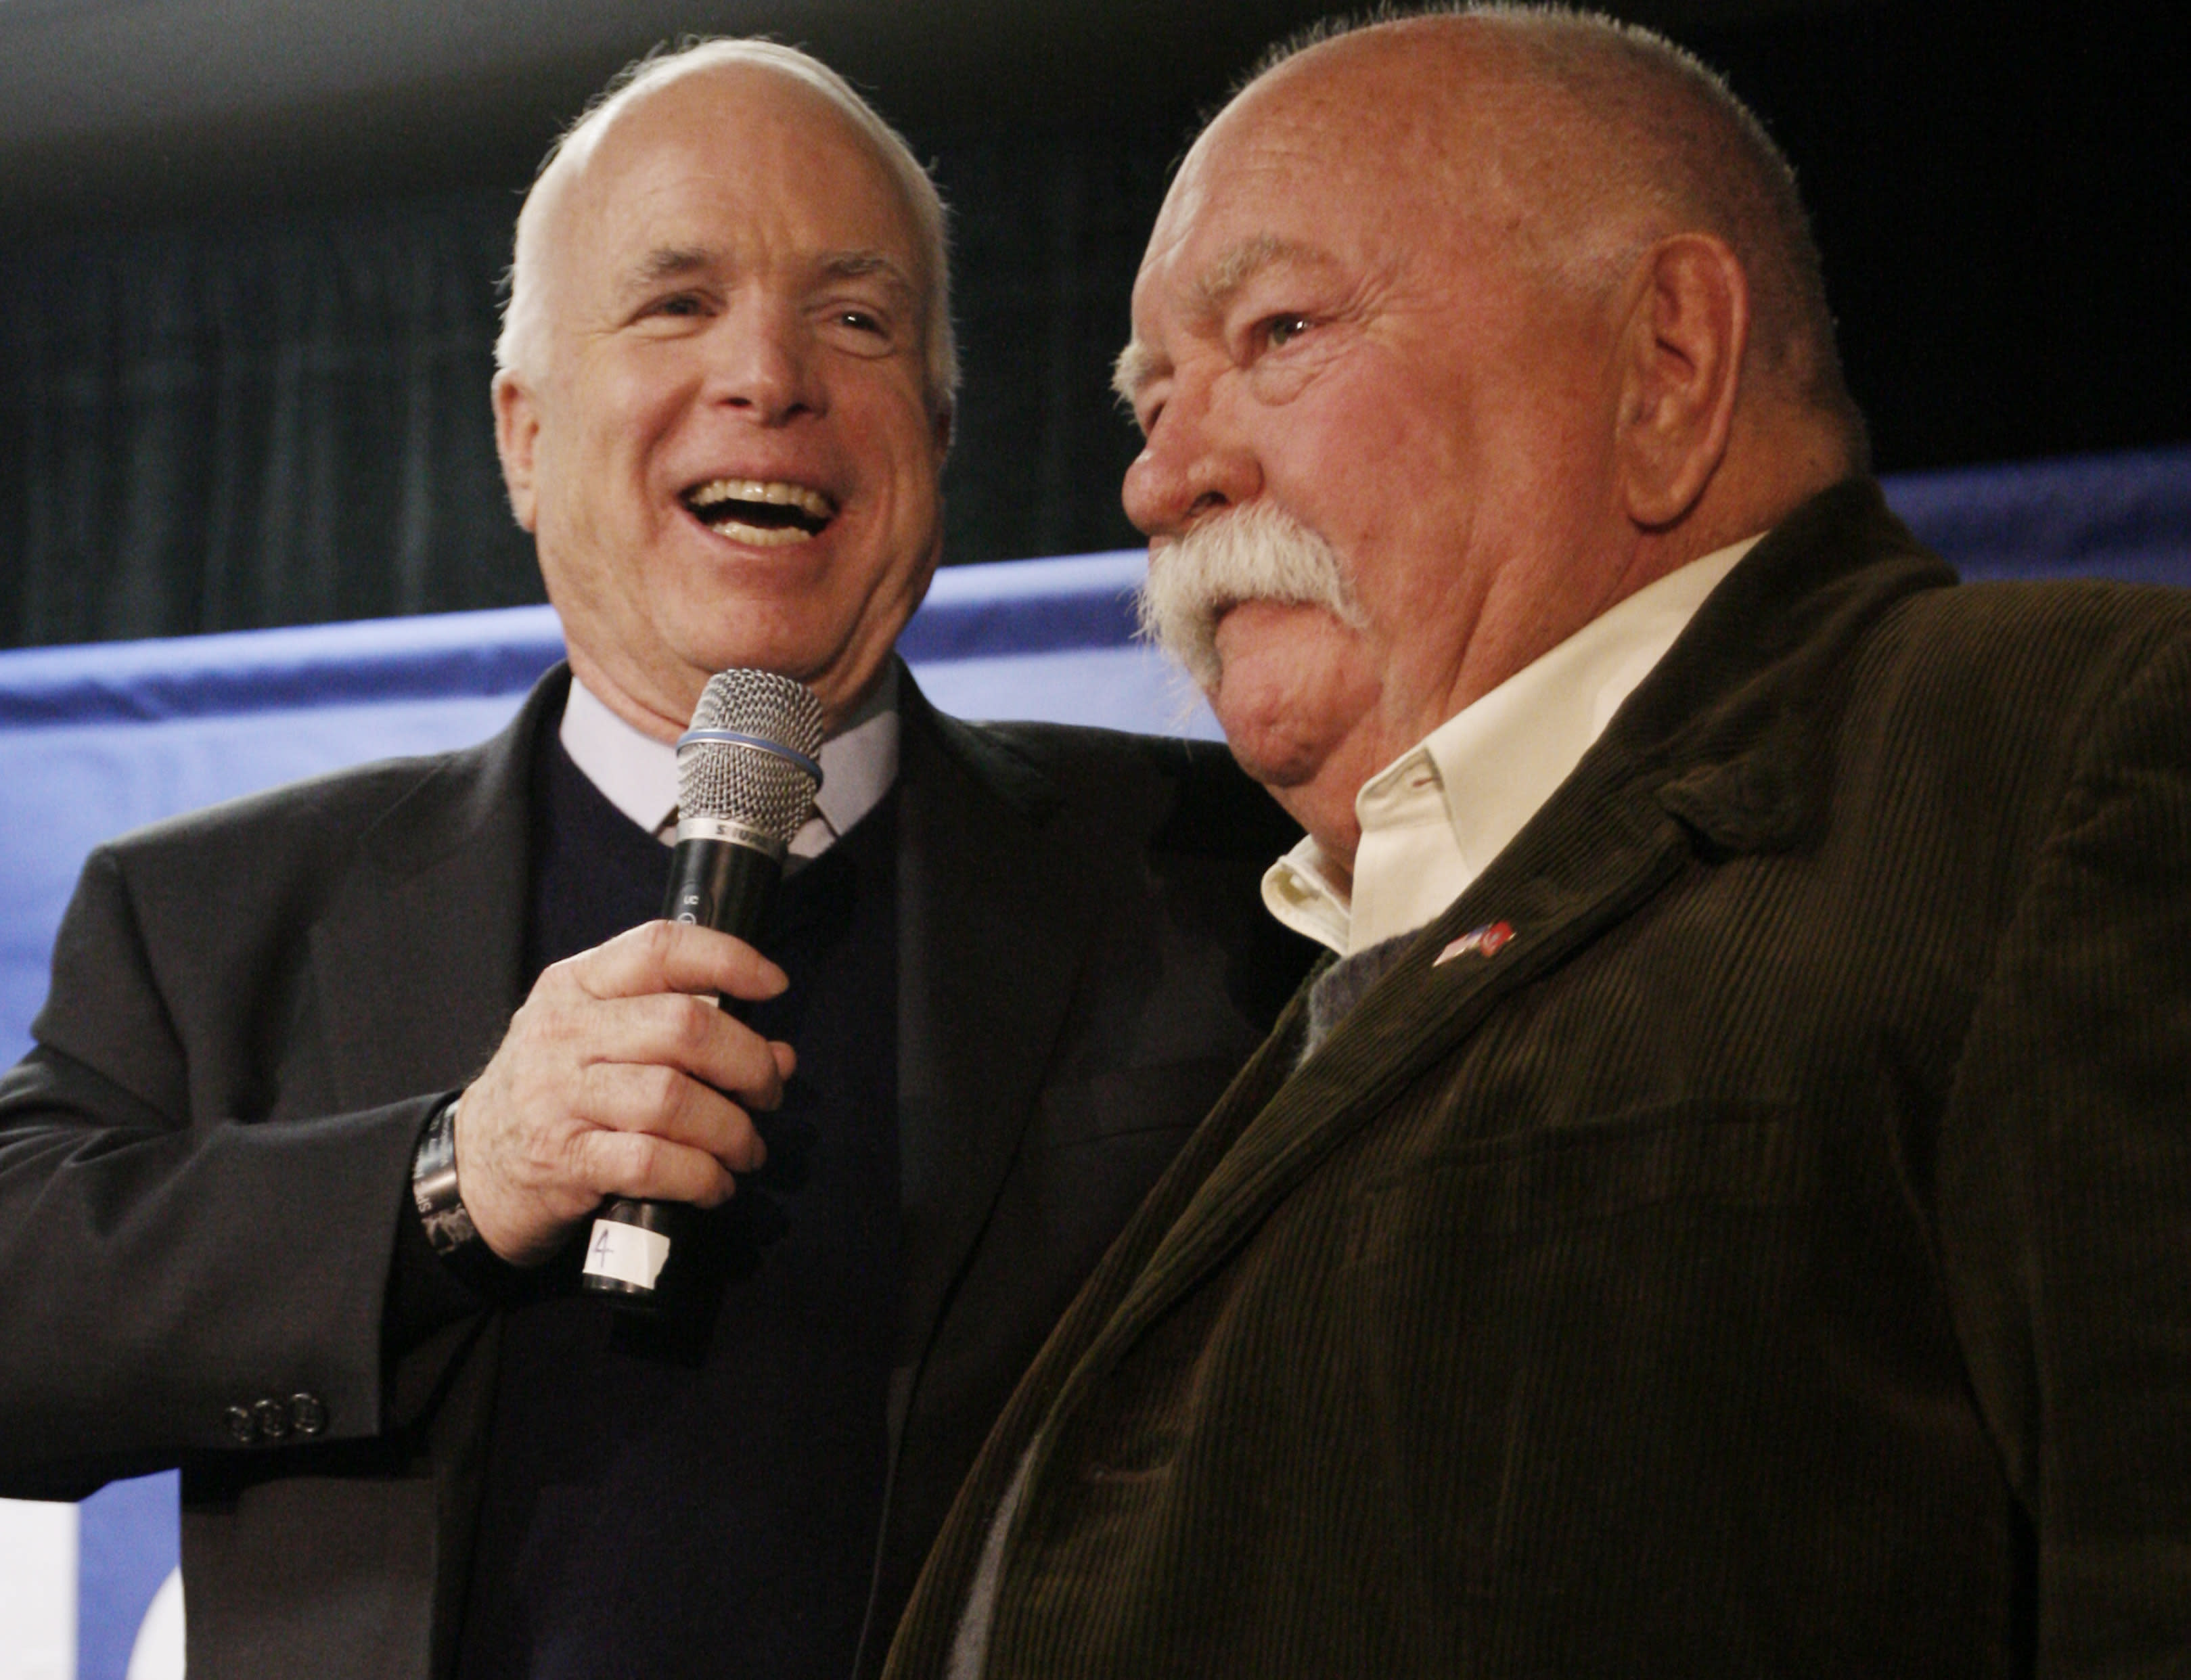 "FILE - In this Jan. 4, 2008, file photo, Republican presidential hopeful, Sen. John McCain, R-Ariz., left, introduces actor, Wilford Brimley, after making a reference to fellow Republican presidential hopeful, former Arkansas Gov. Mike Huckabee, campaigning with actor Chuck Norris, as McCain makes a campaign stop at Hudson Veterans of Foreign Wars Post 5791, in Hudson, N.H. Brimley, who worked his way up from stunt performer to star of film such as ""Cocoon"" and ""The Natural,"" has died. He was 85. Brimley's manager Lynda Bensky said the actor died Saturday morning, Aug. 1, 2020 in a Utah hospital. (AP Photo/Charles Dharapak, File)"